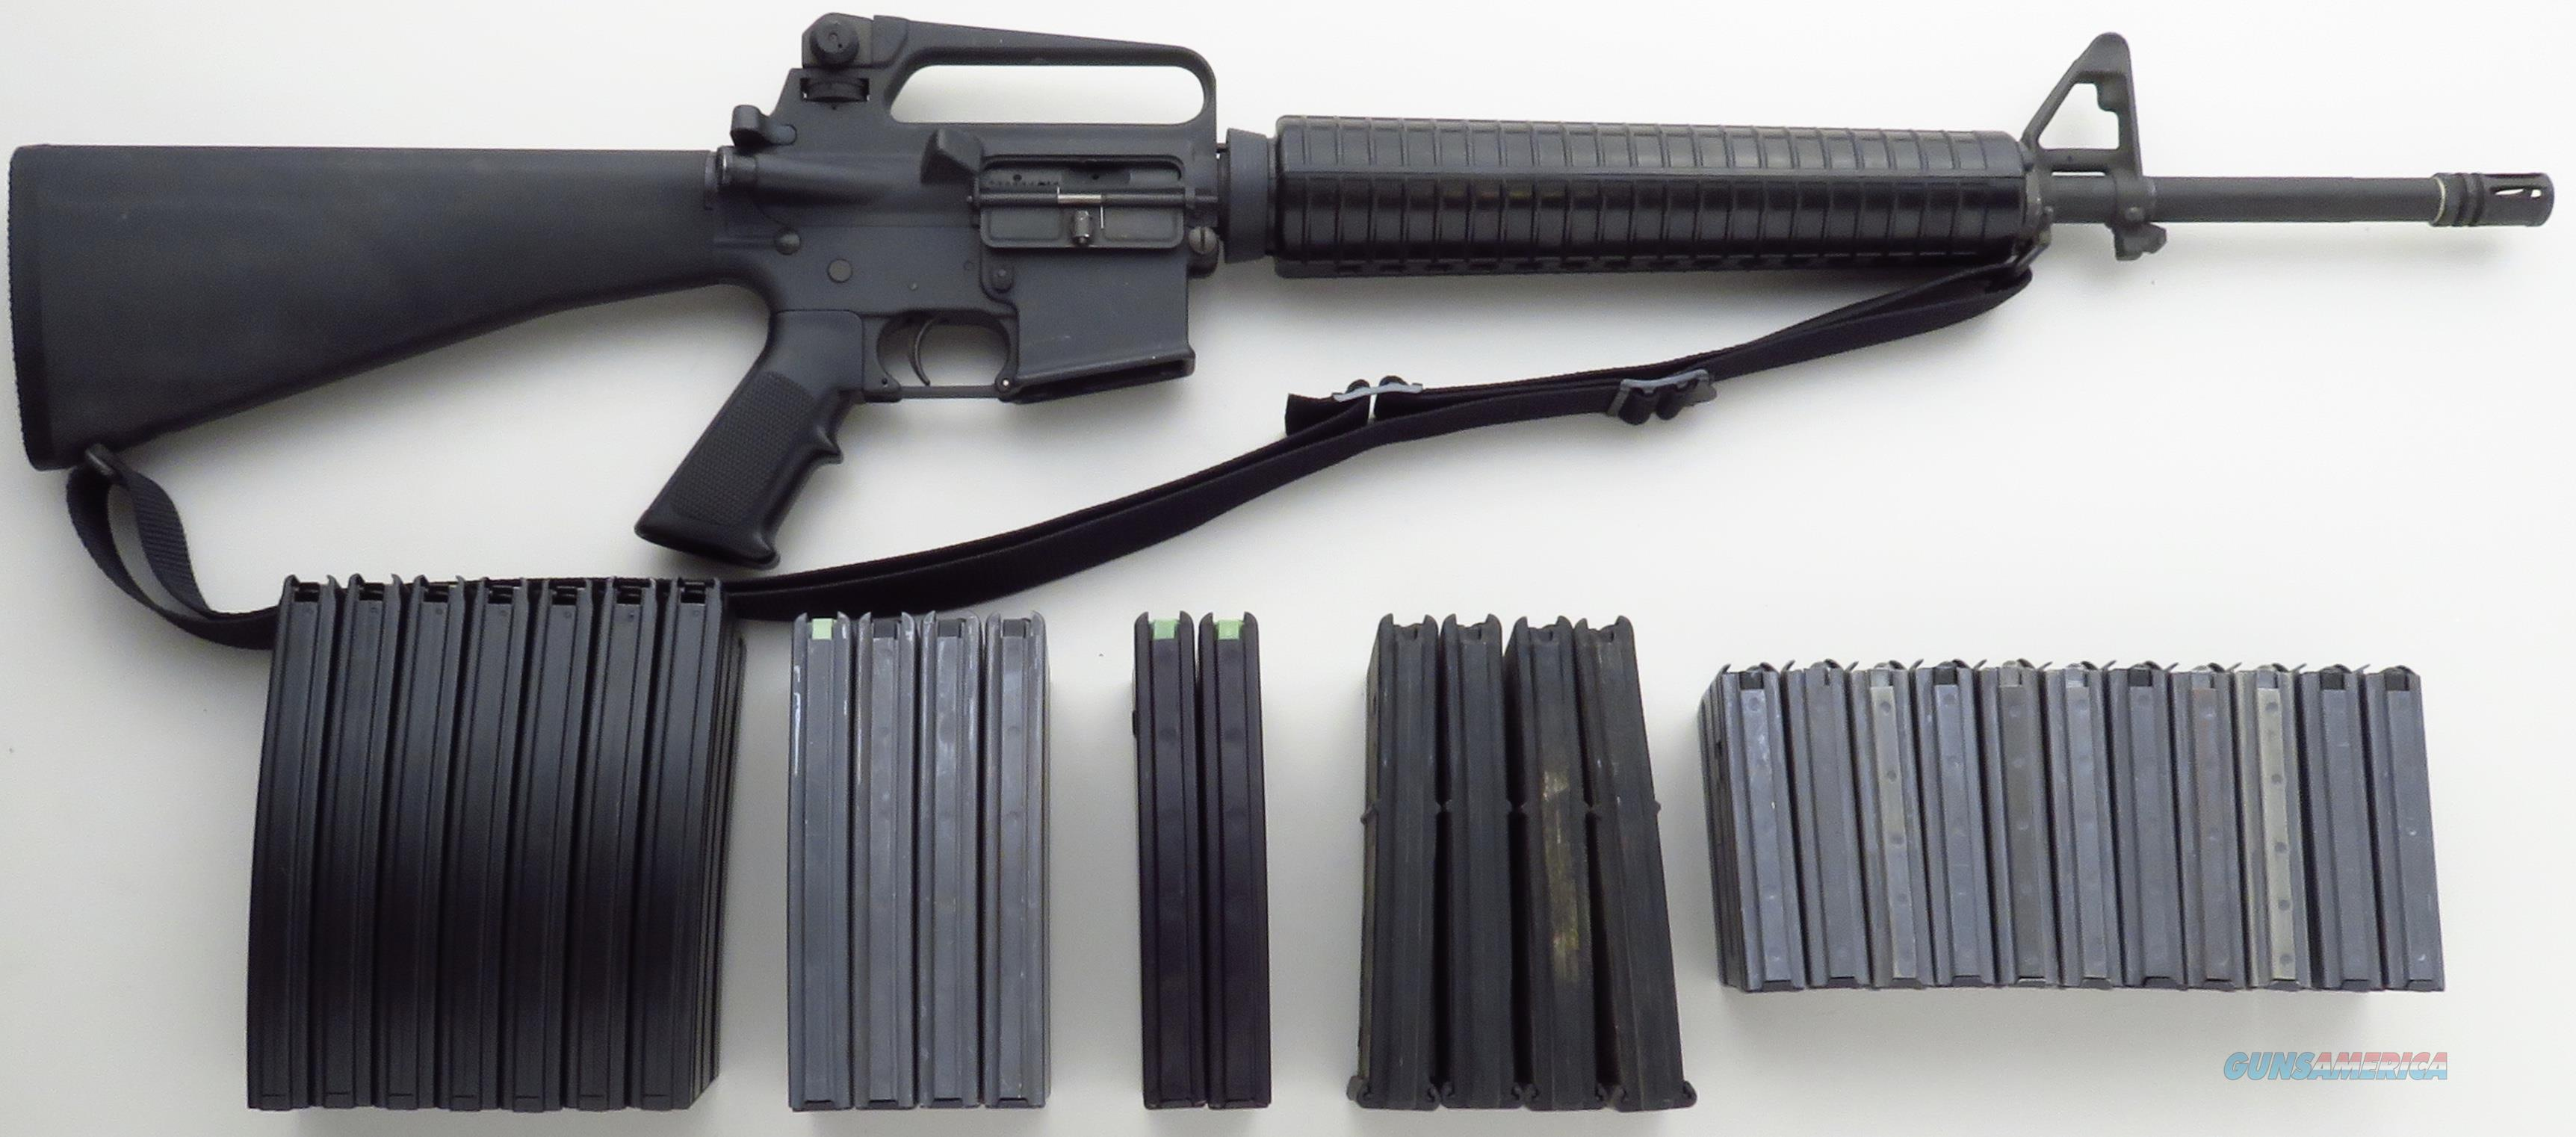 Colt pre-ban AR-15 A2 HBAR Sporter, 28 high-capacity magazines, 1/7 twist, 95%  Guns > Rifles > Colt Military/Tactical Rifles